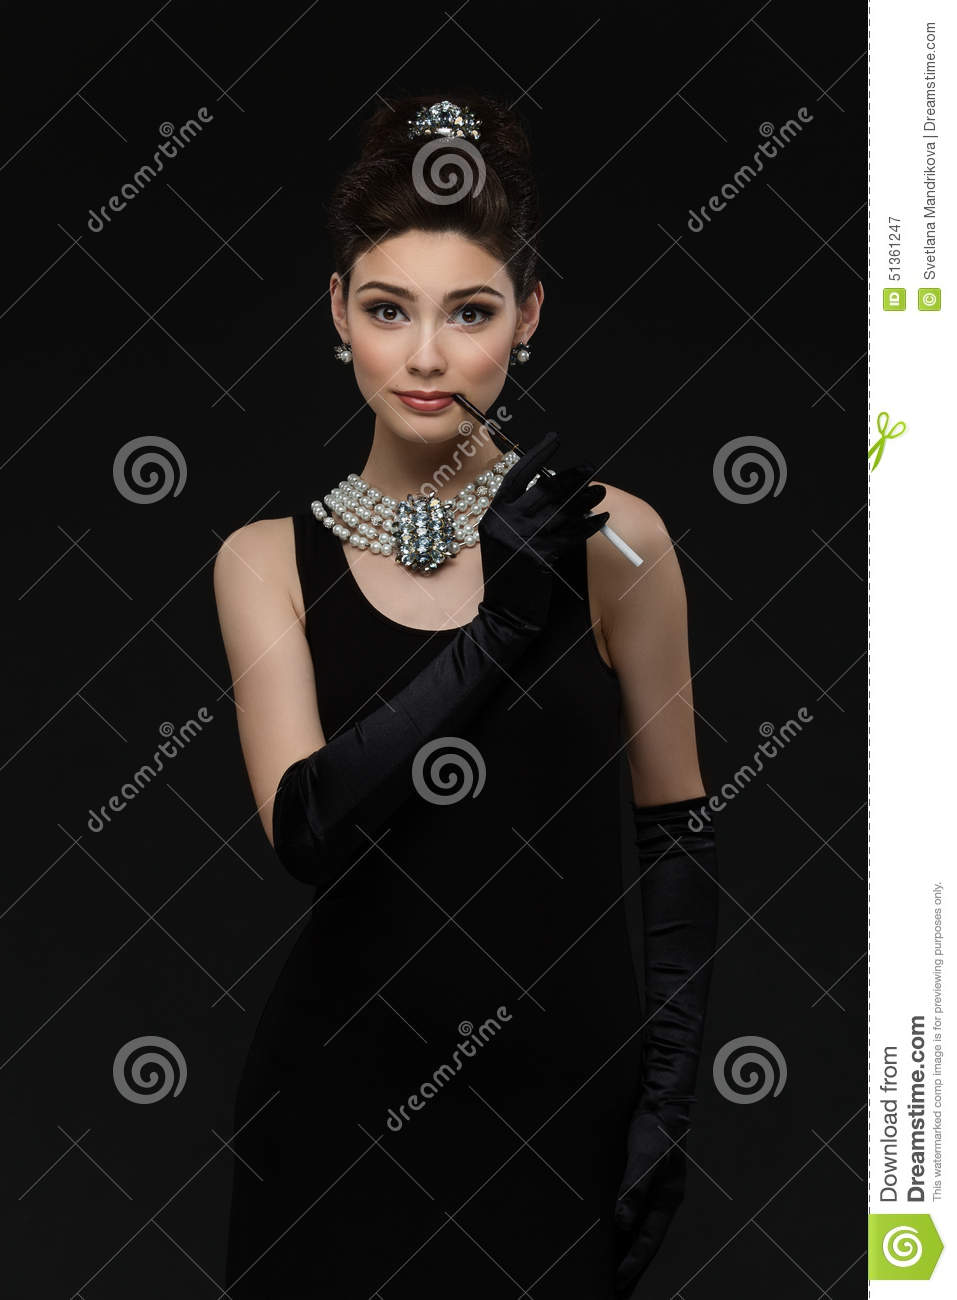 Woman With Cigarette Stock Photo Image 51361247